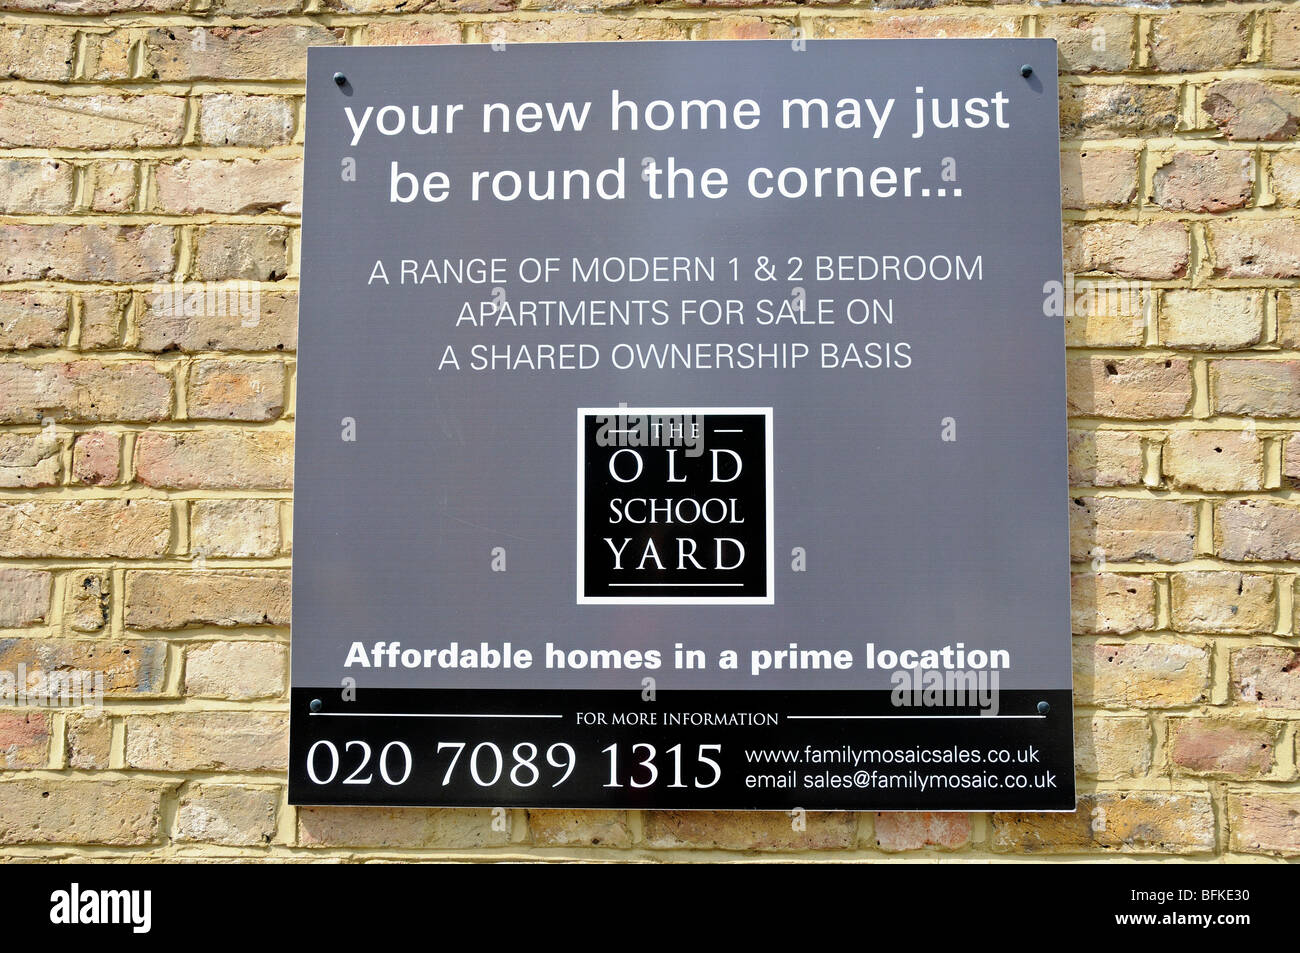 The Old School Yard affordable homes sign Holloway London England UK - Stock Image